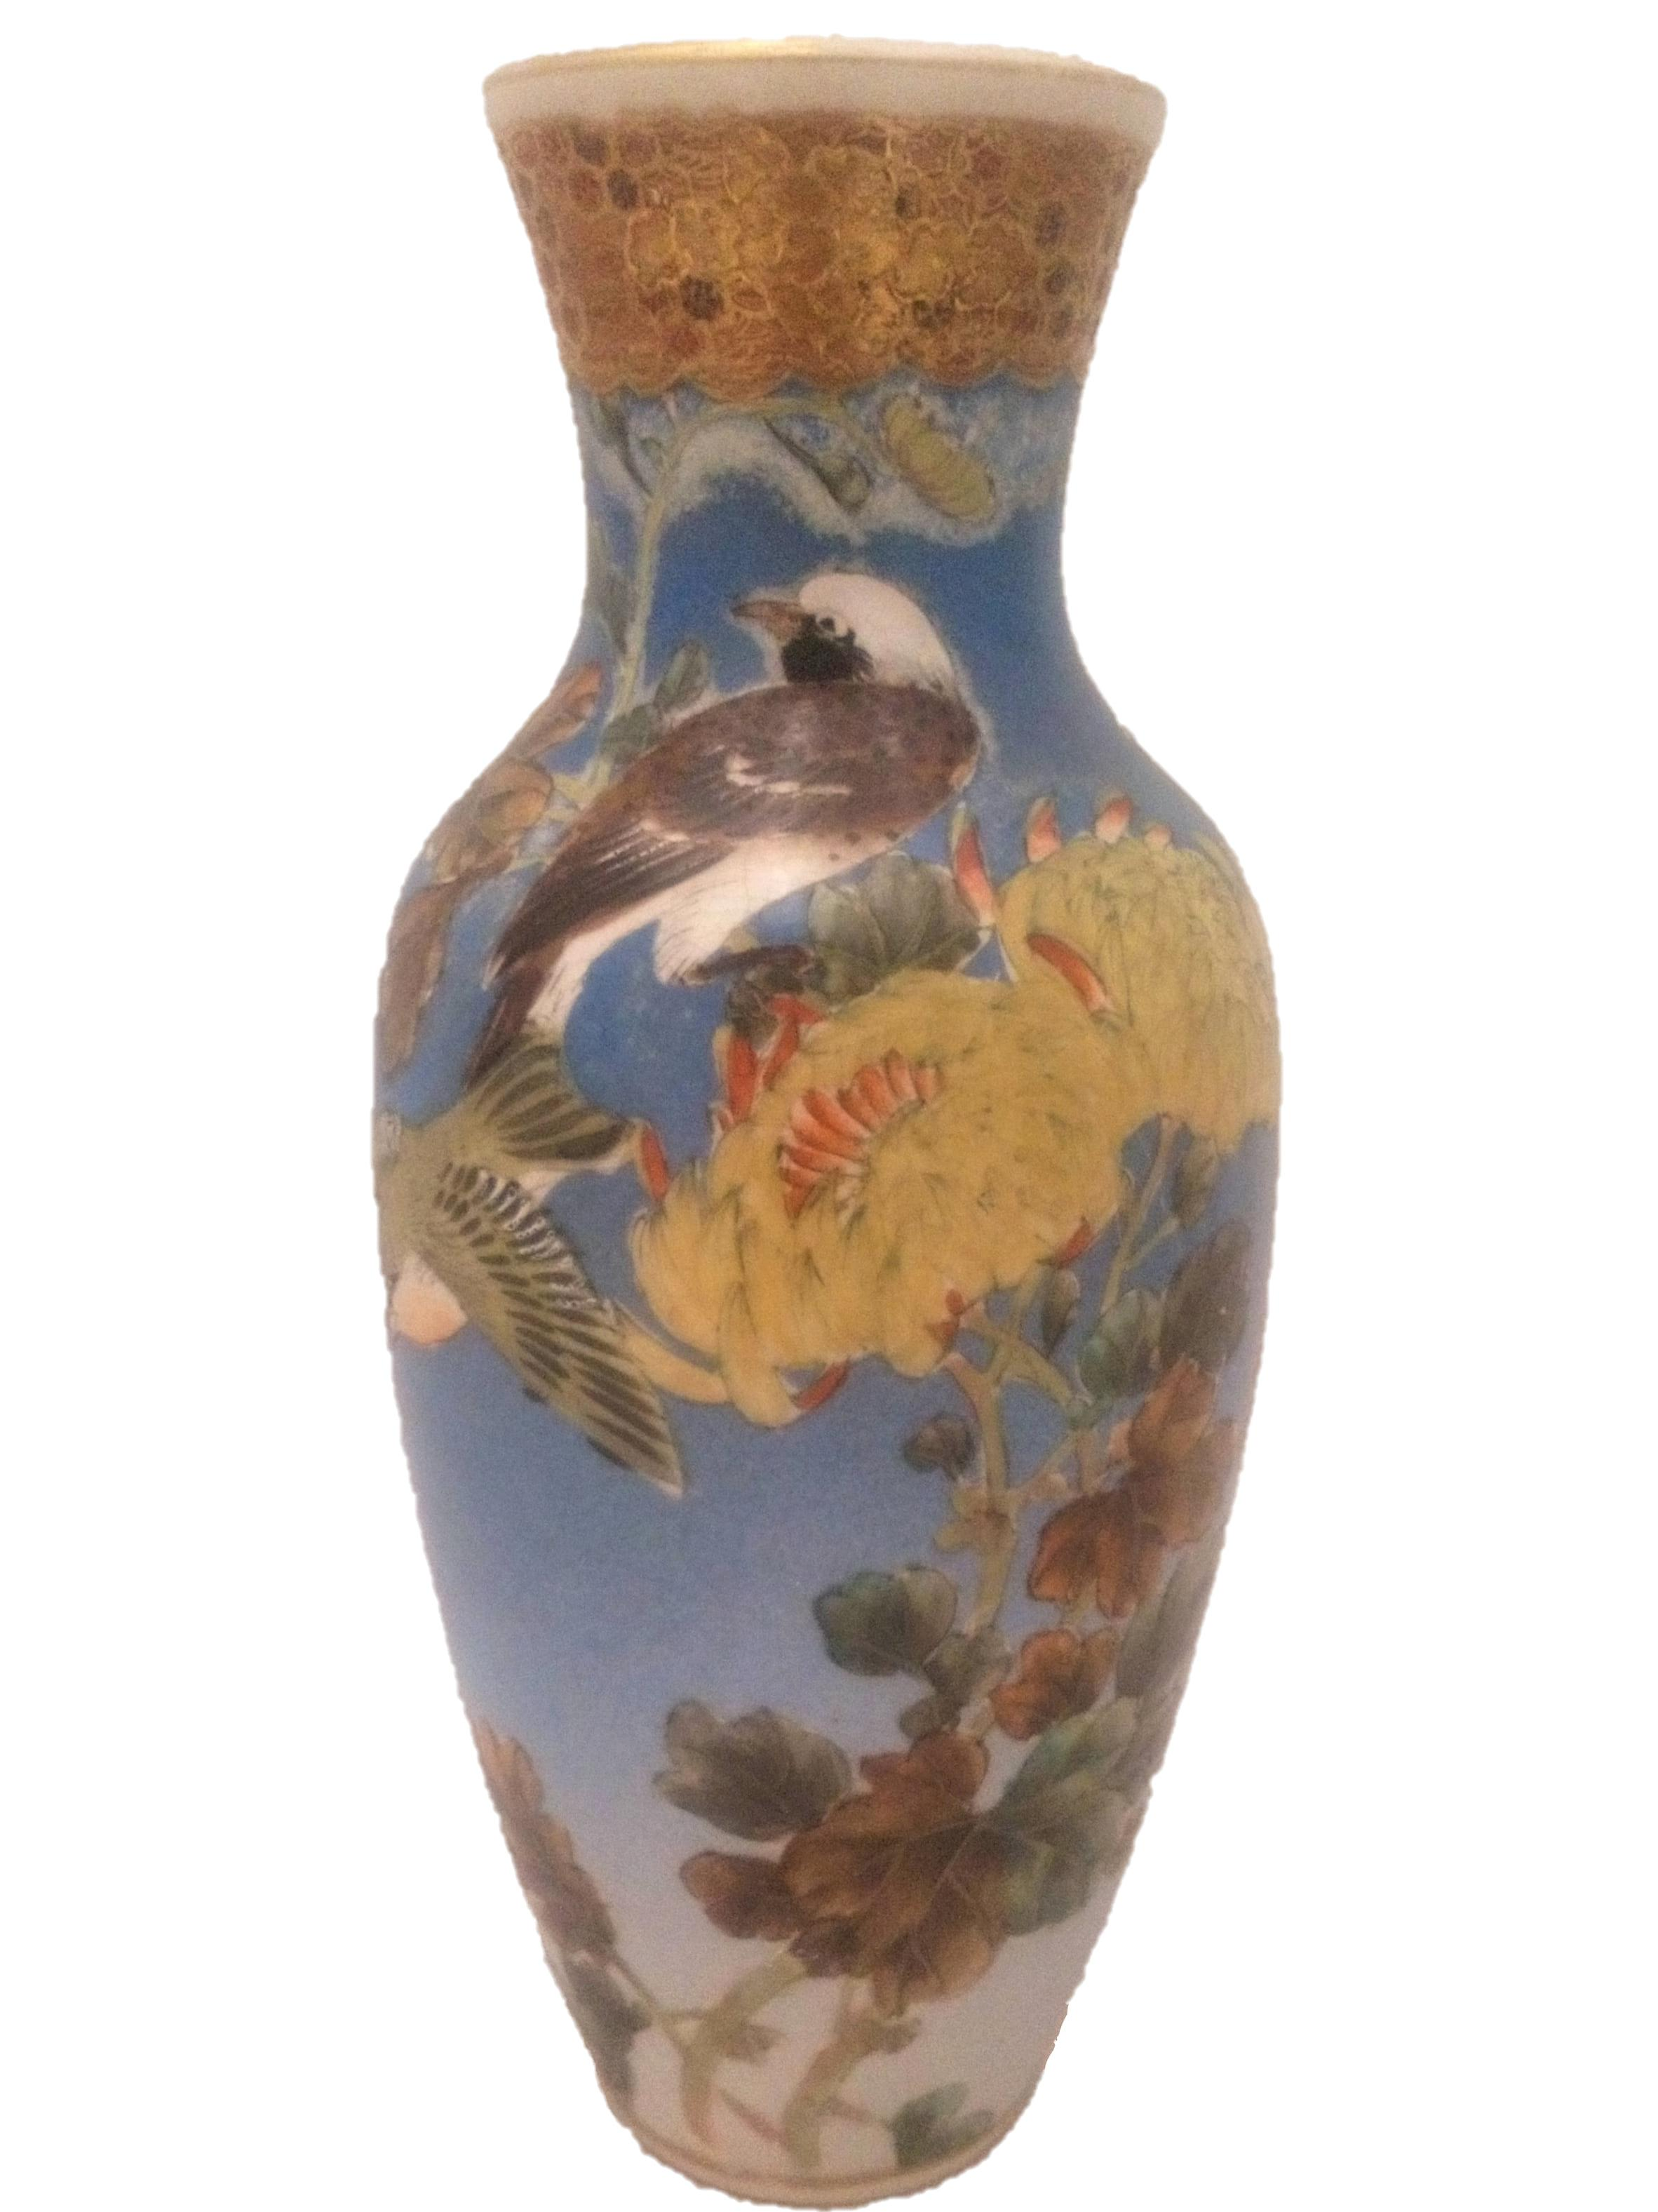 Antique Japanese Satsuma Pottery Baluster Vase Hand Painted Birds Butterfly and flowers Meiji c 1900